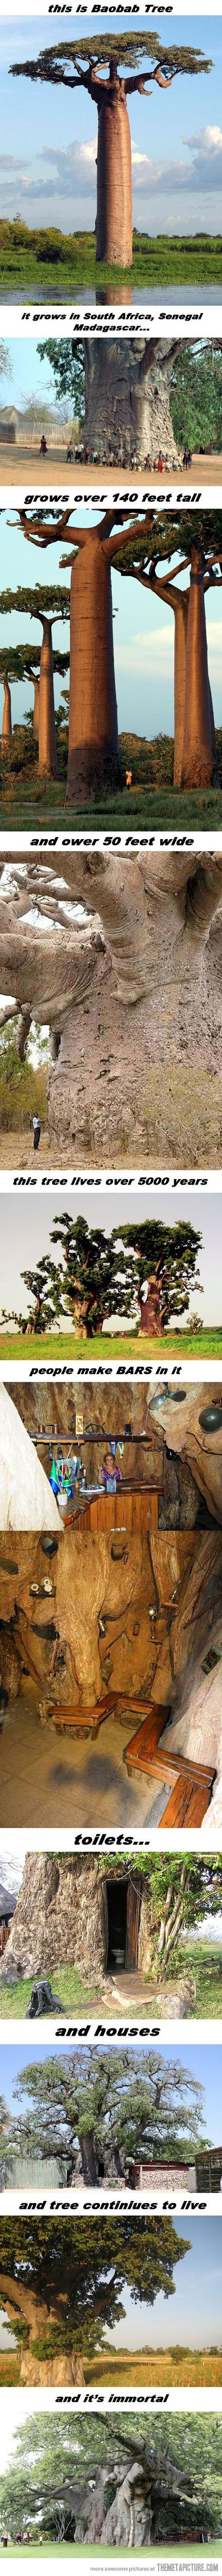 The most amazing tree on Earth